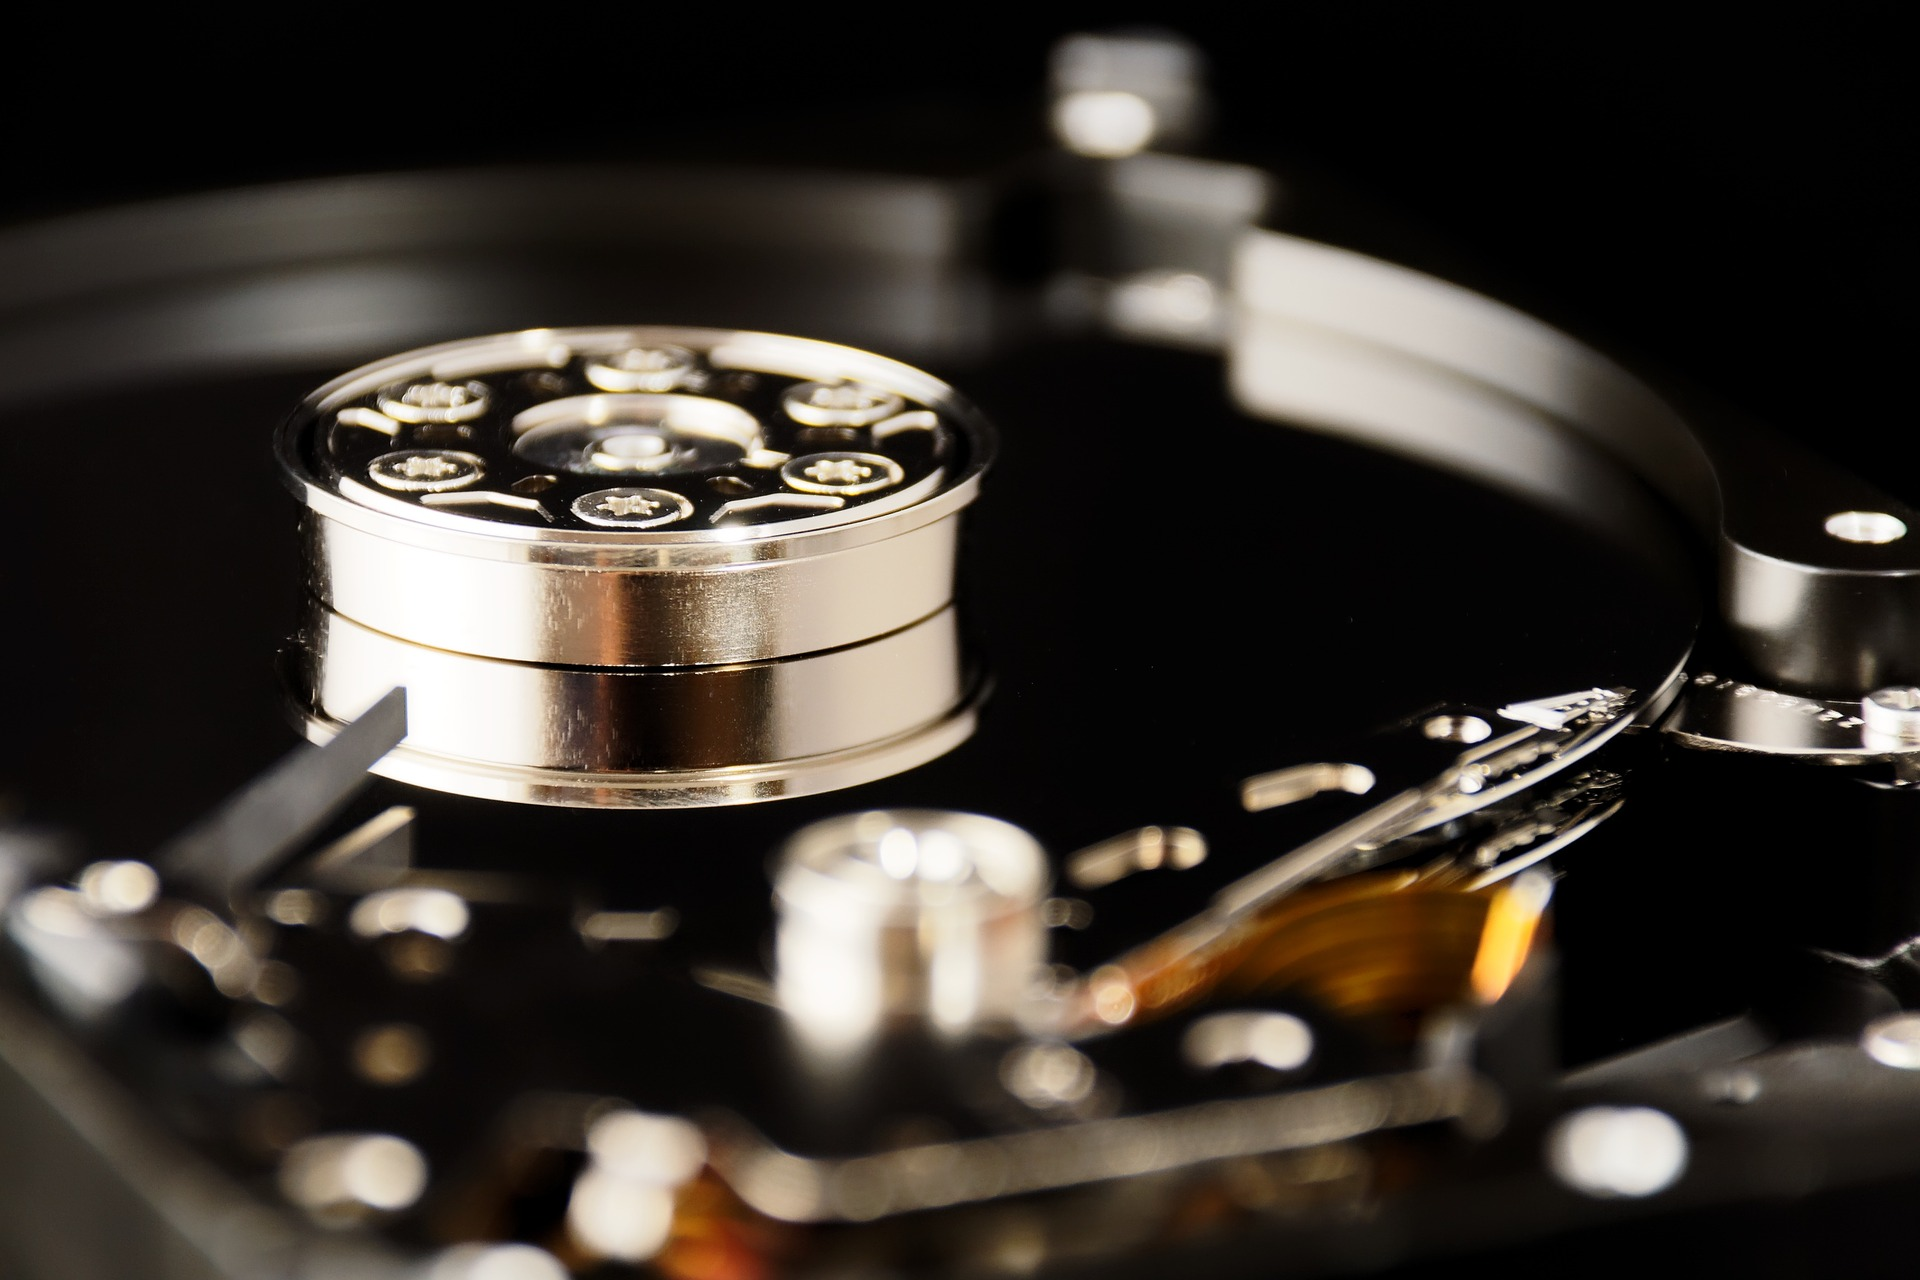 Data Recovery for your Data Storage Devices - Image 2